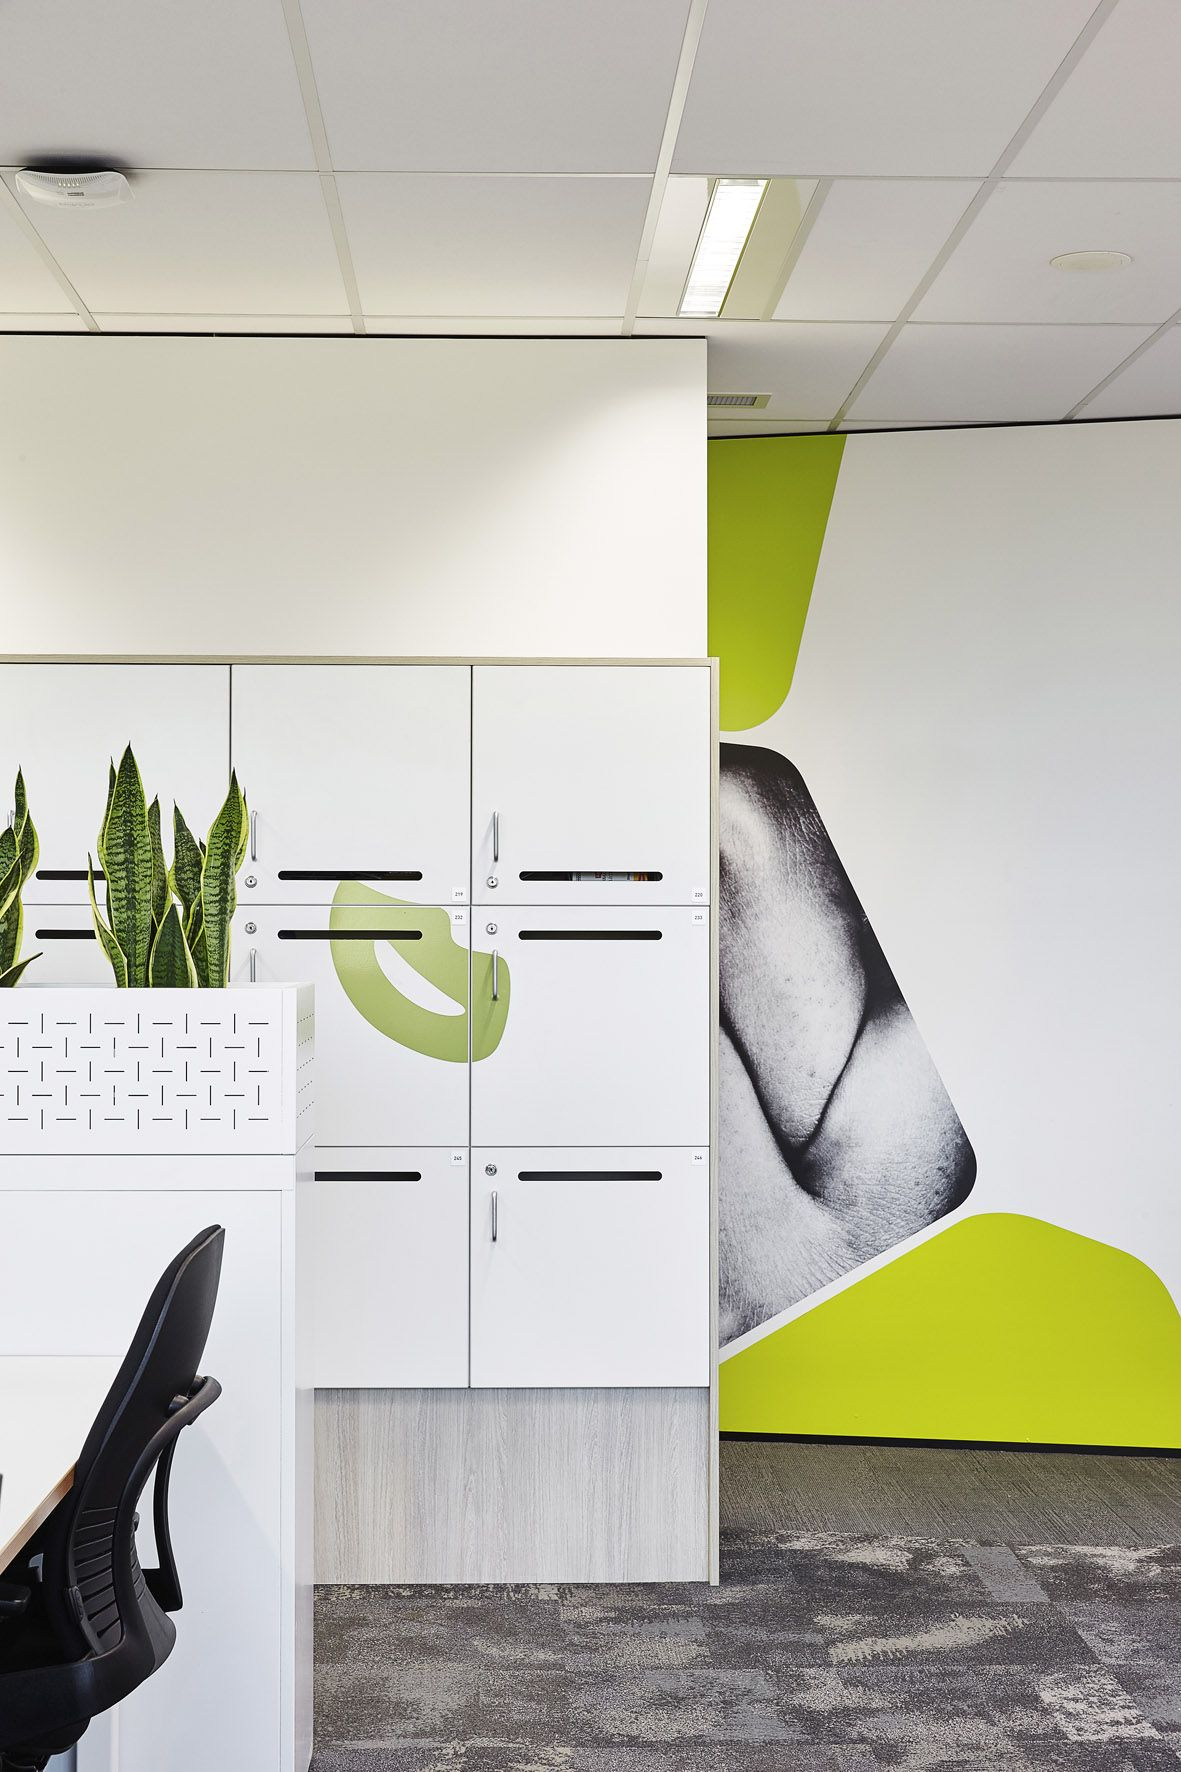 Unilever Nr Workplace Steelcase Workstations, Csm Storage And Lockers Design